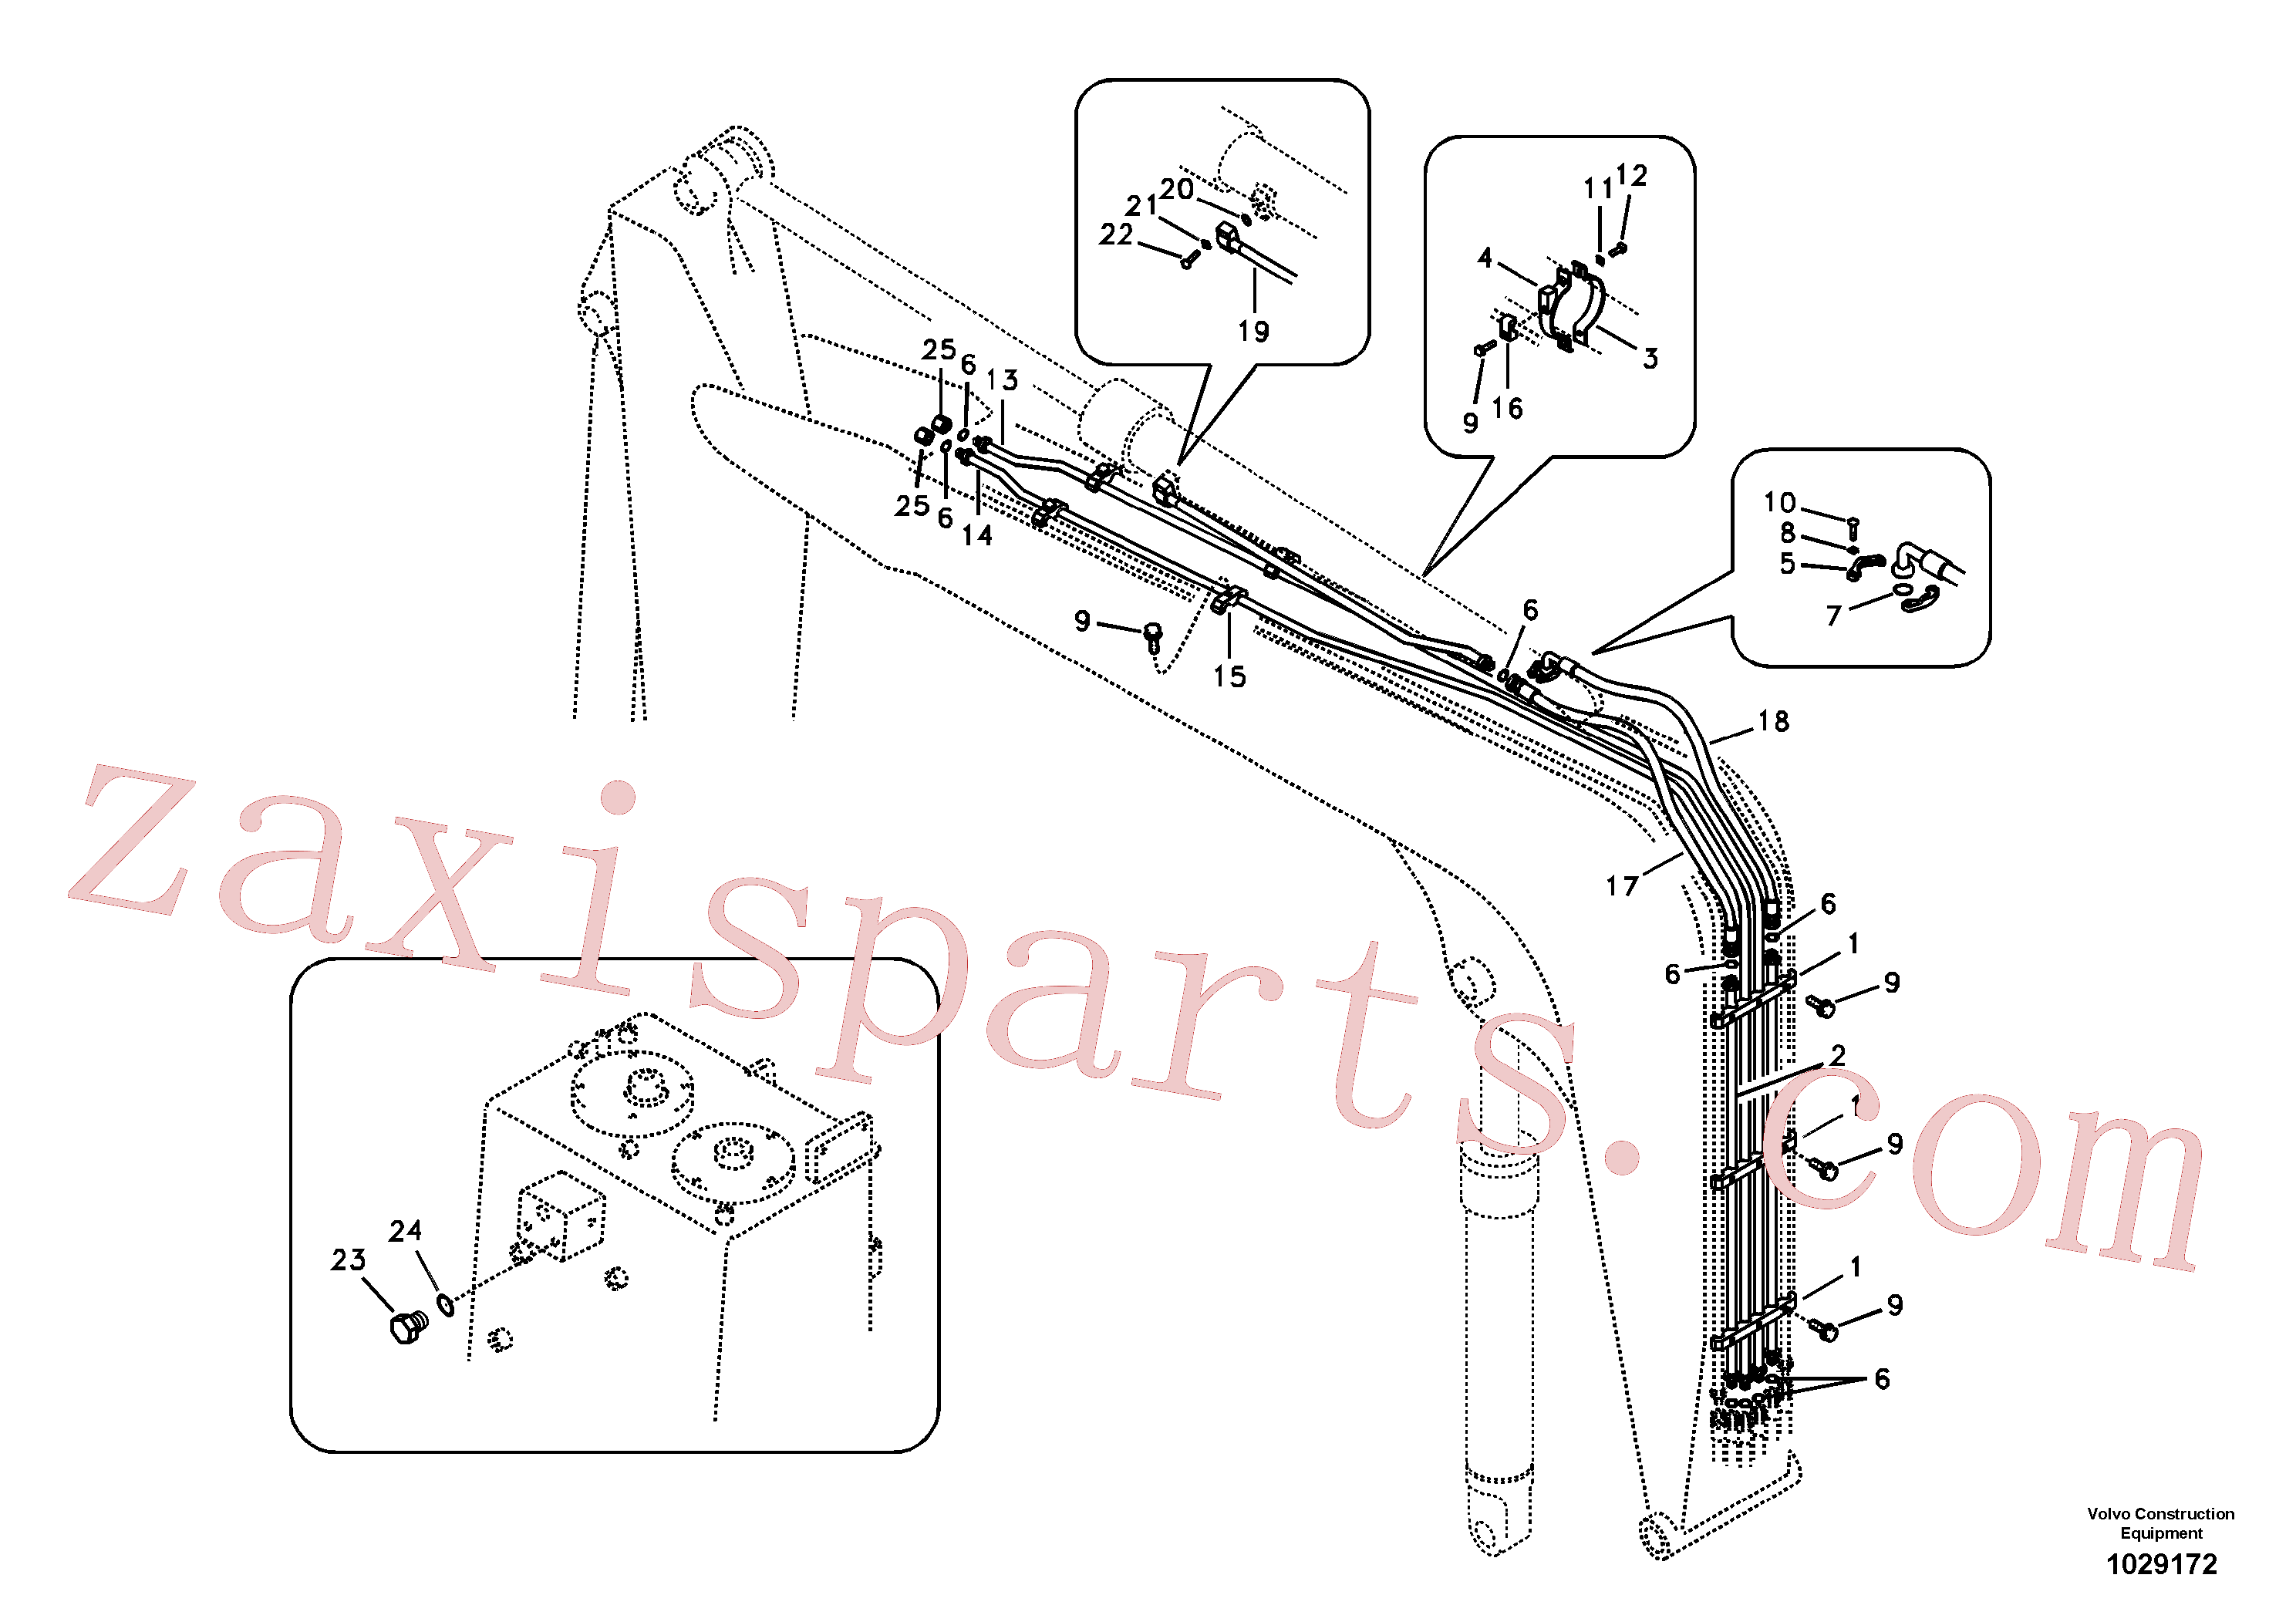 VOE14528544 for Volvo Working hydraulic, dipper arm cylinder on boom.(1029172 assembly)